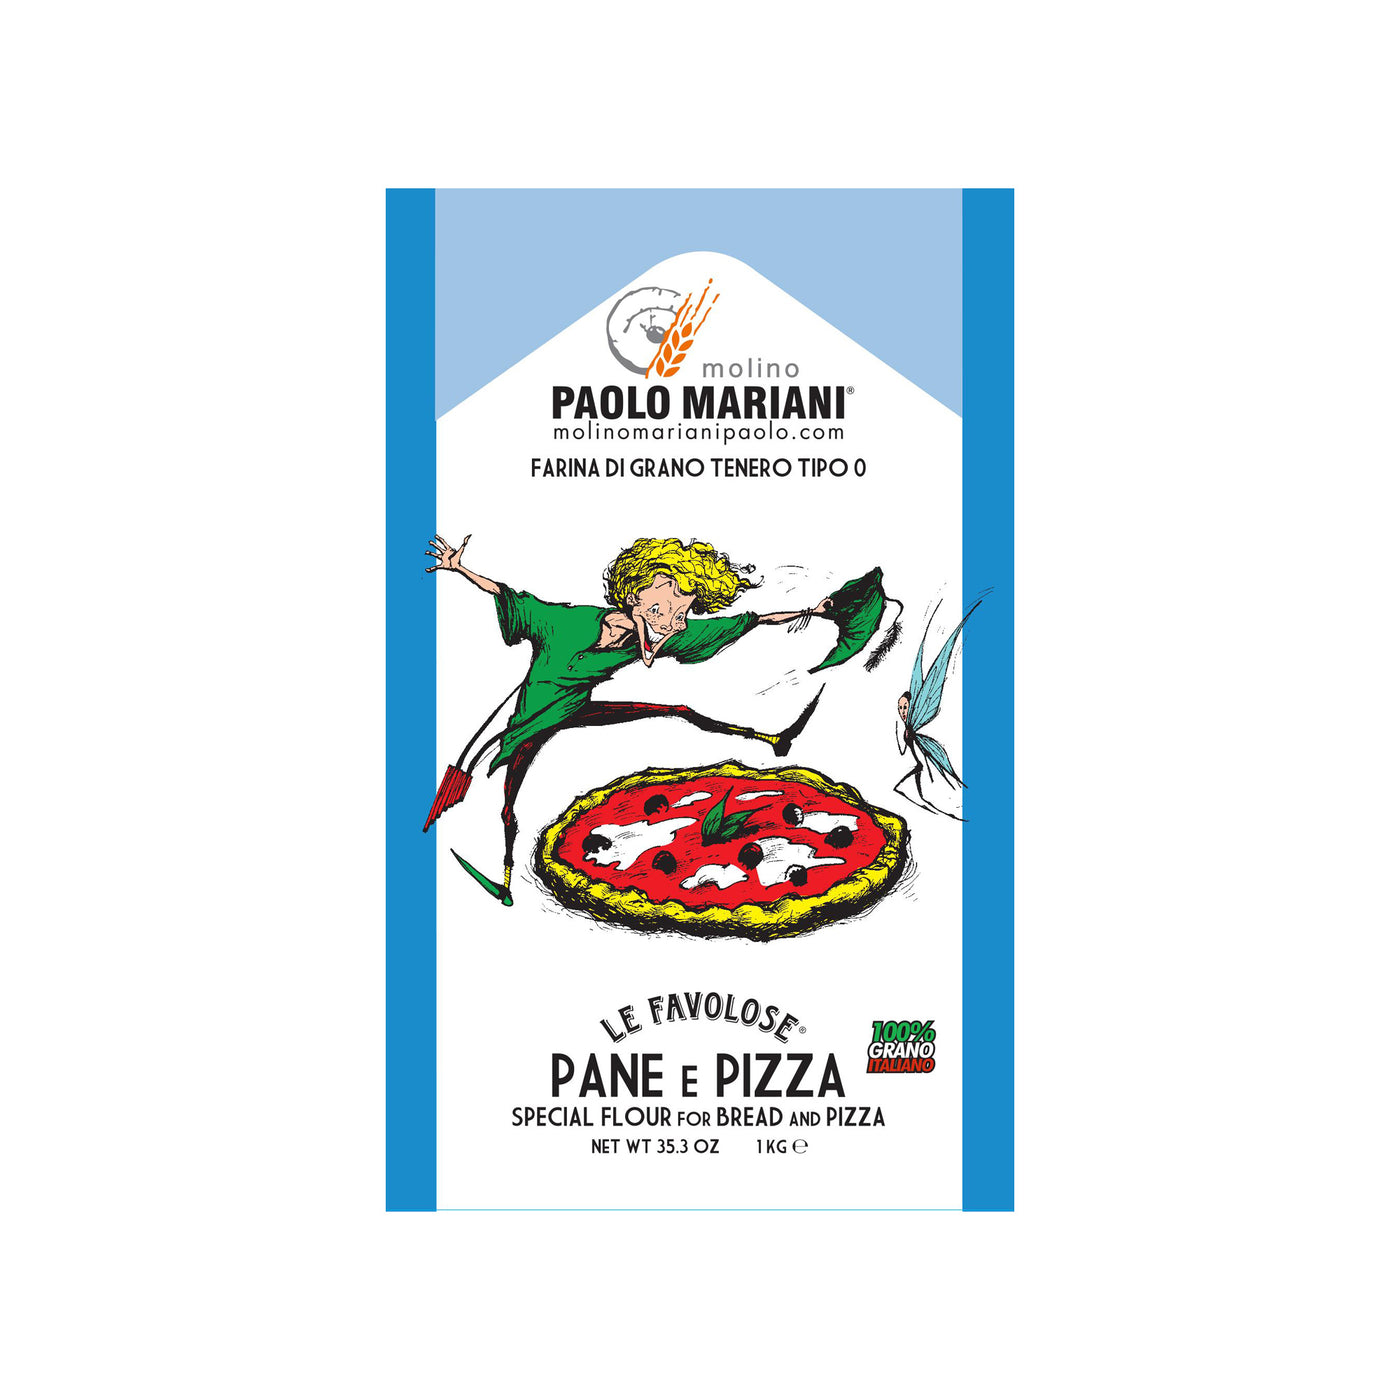 Paolo Mariani Italian Soft Wheat Type 0 Flour for Pizza and Bread 2.2 Lbs